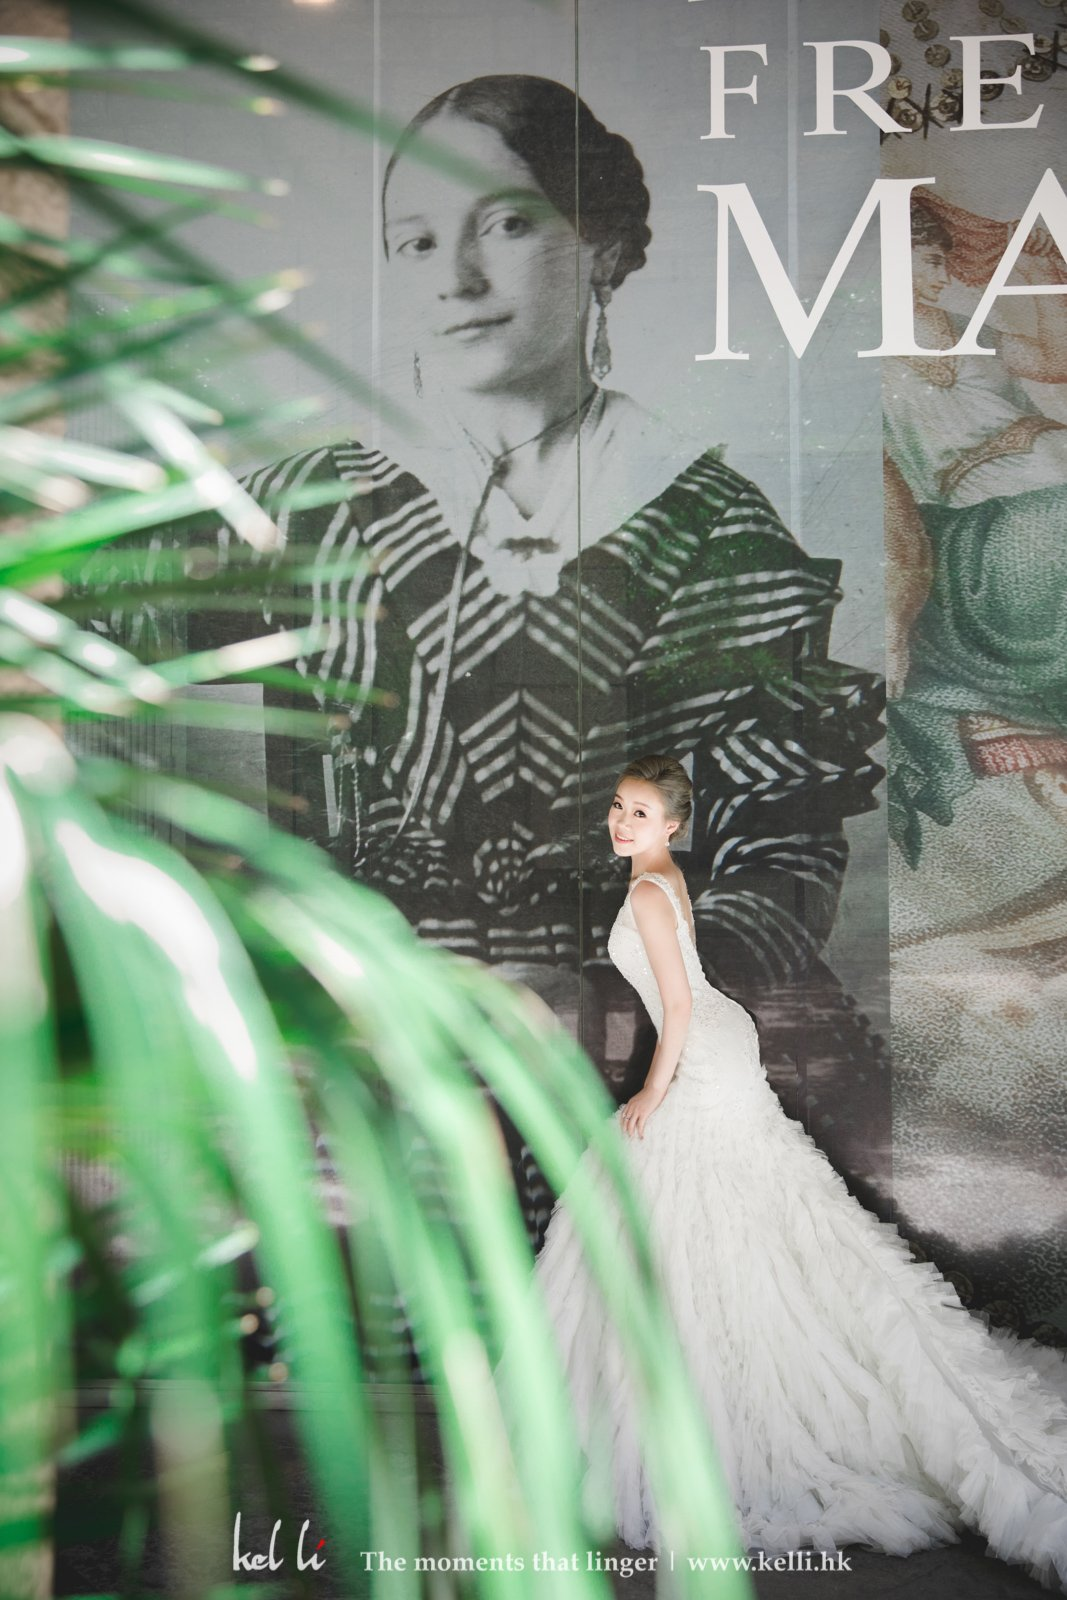 Artistic background in Barcelona is awesome for bridal portrait